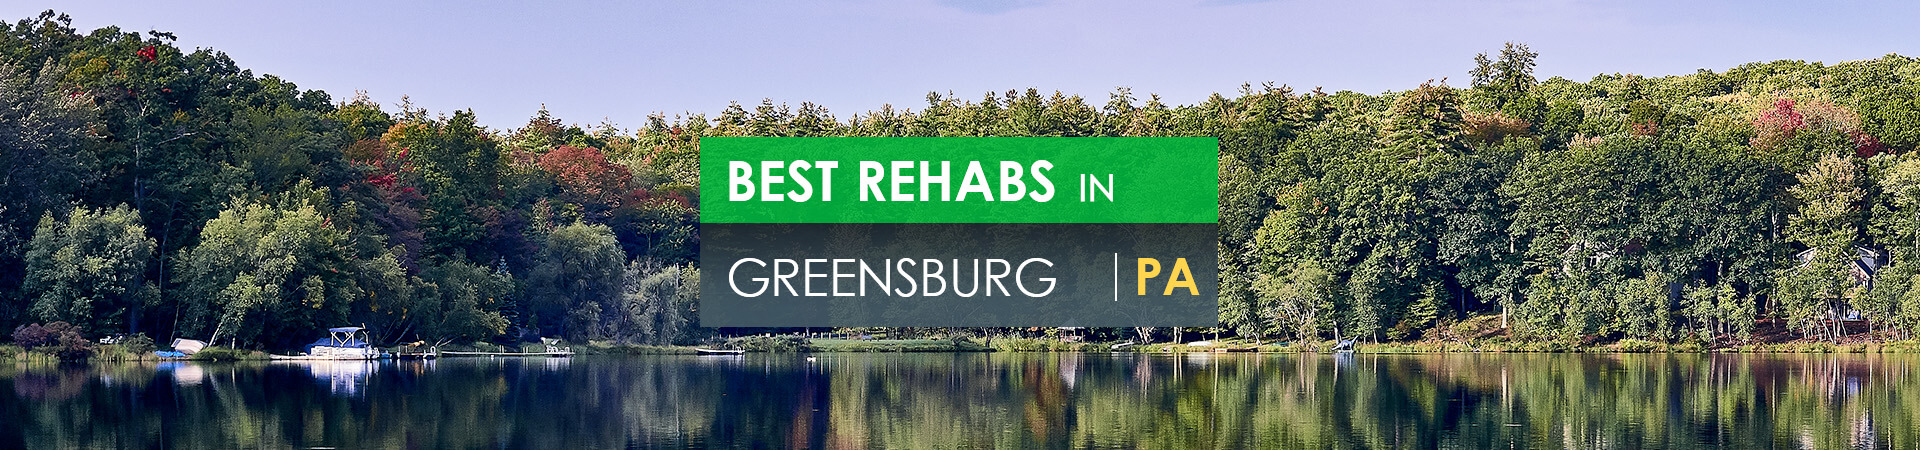 Best rehabs in Greensburg, PA